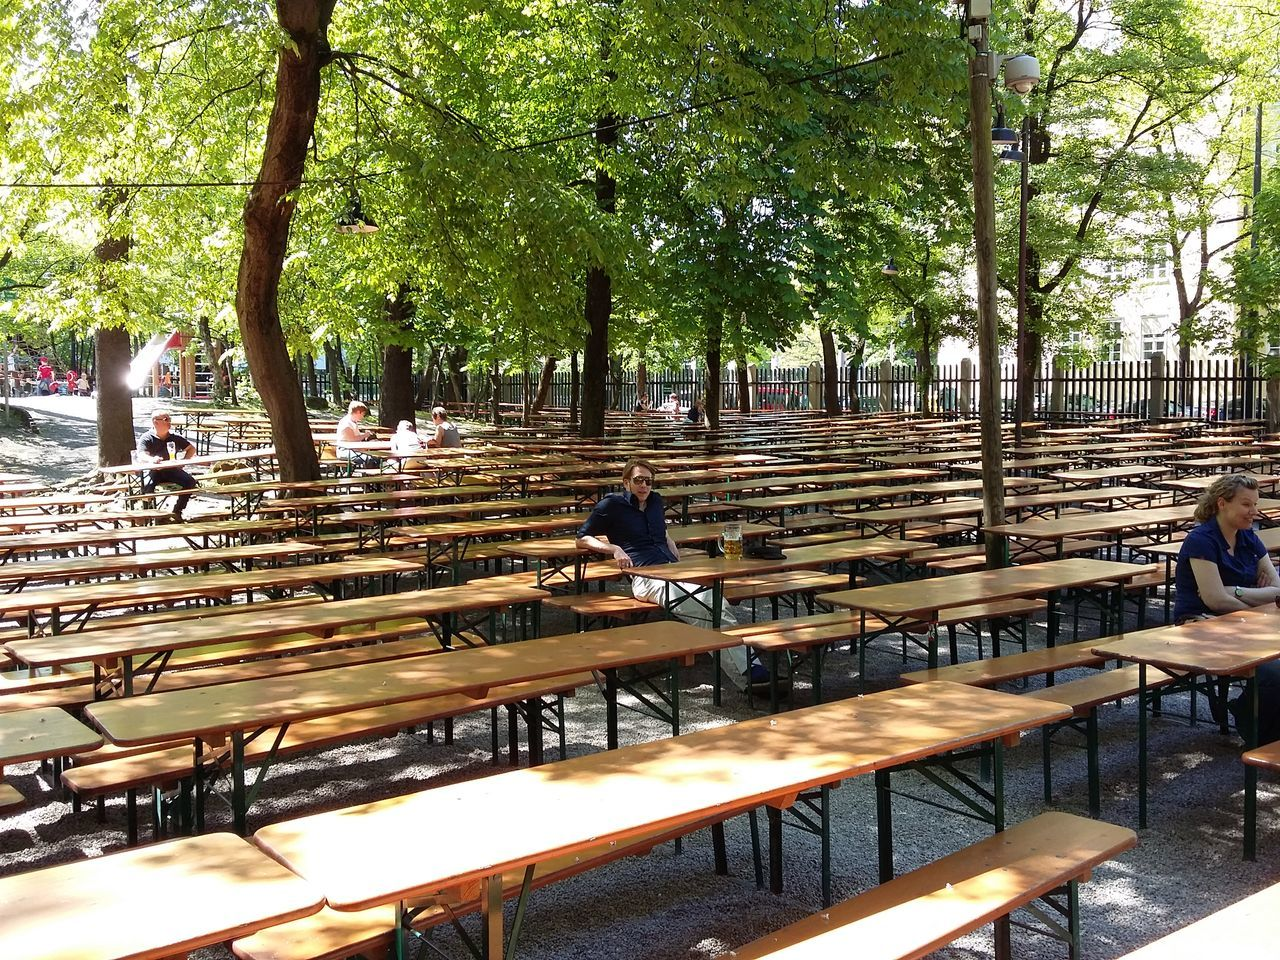 Waiting at the biergarten. · Munich München germany Augustiner August beer garden benches many benches Benches all around bench paradise summer Early Bird The Purist (no edit, no filter)